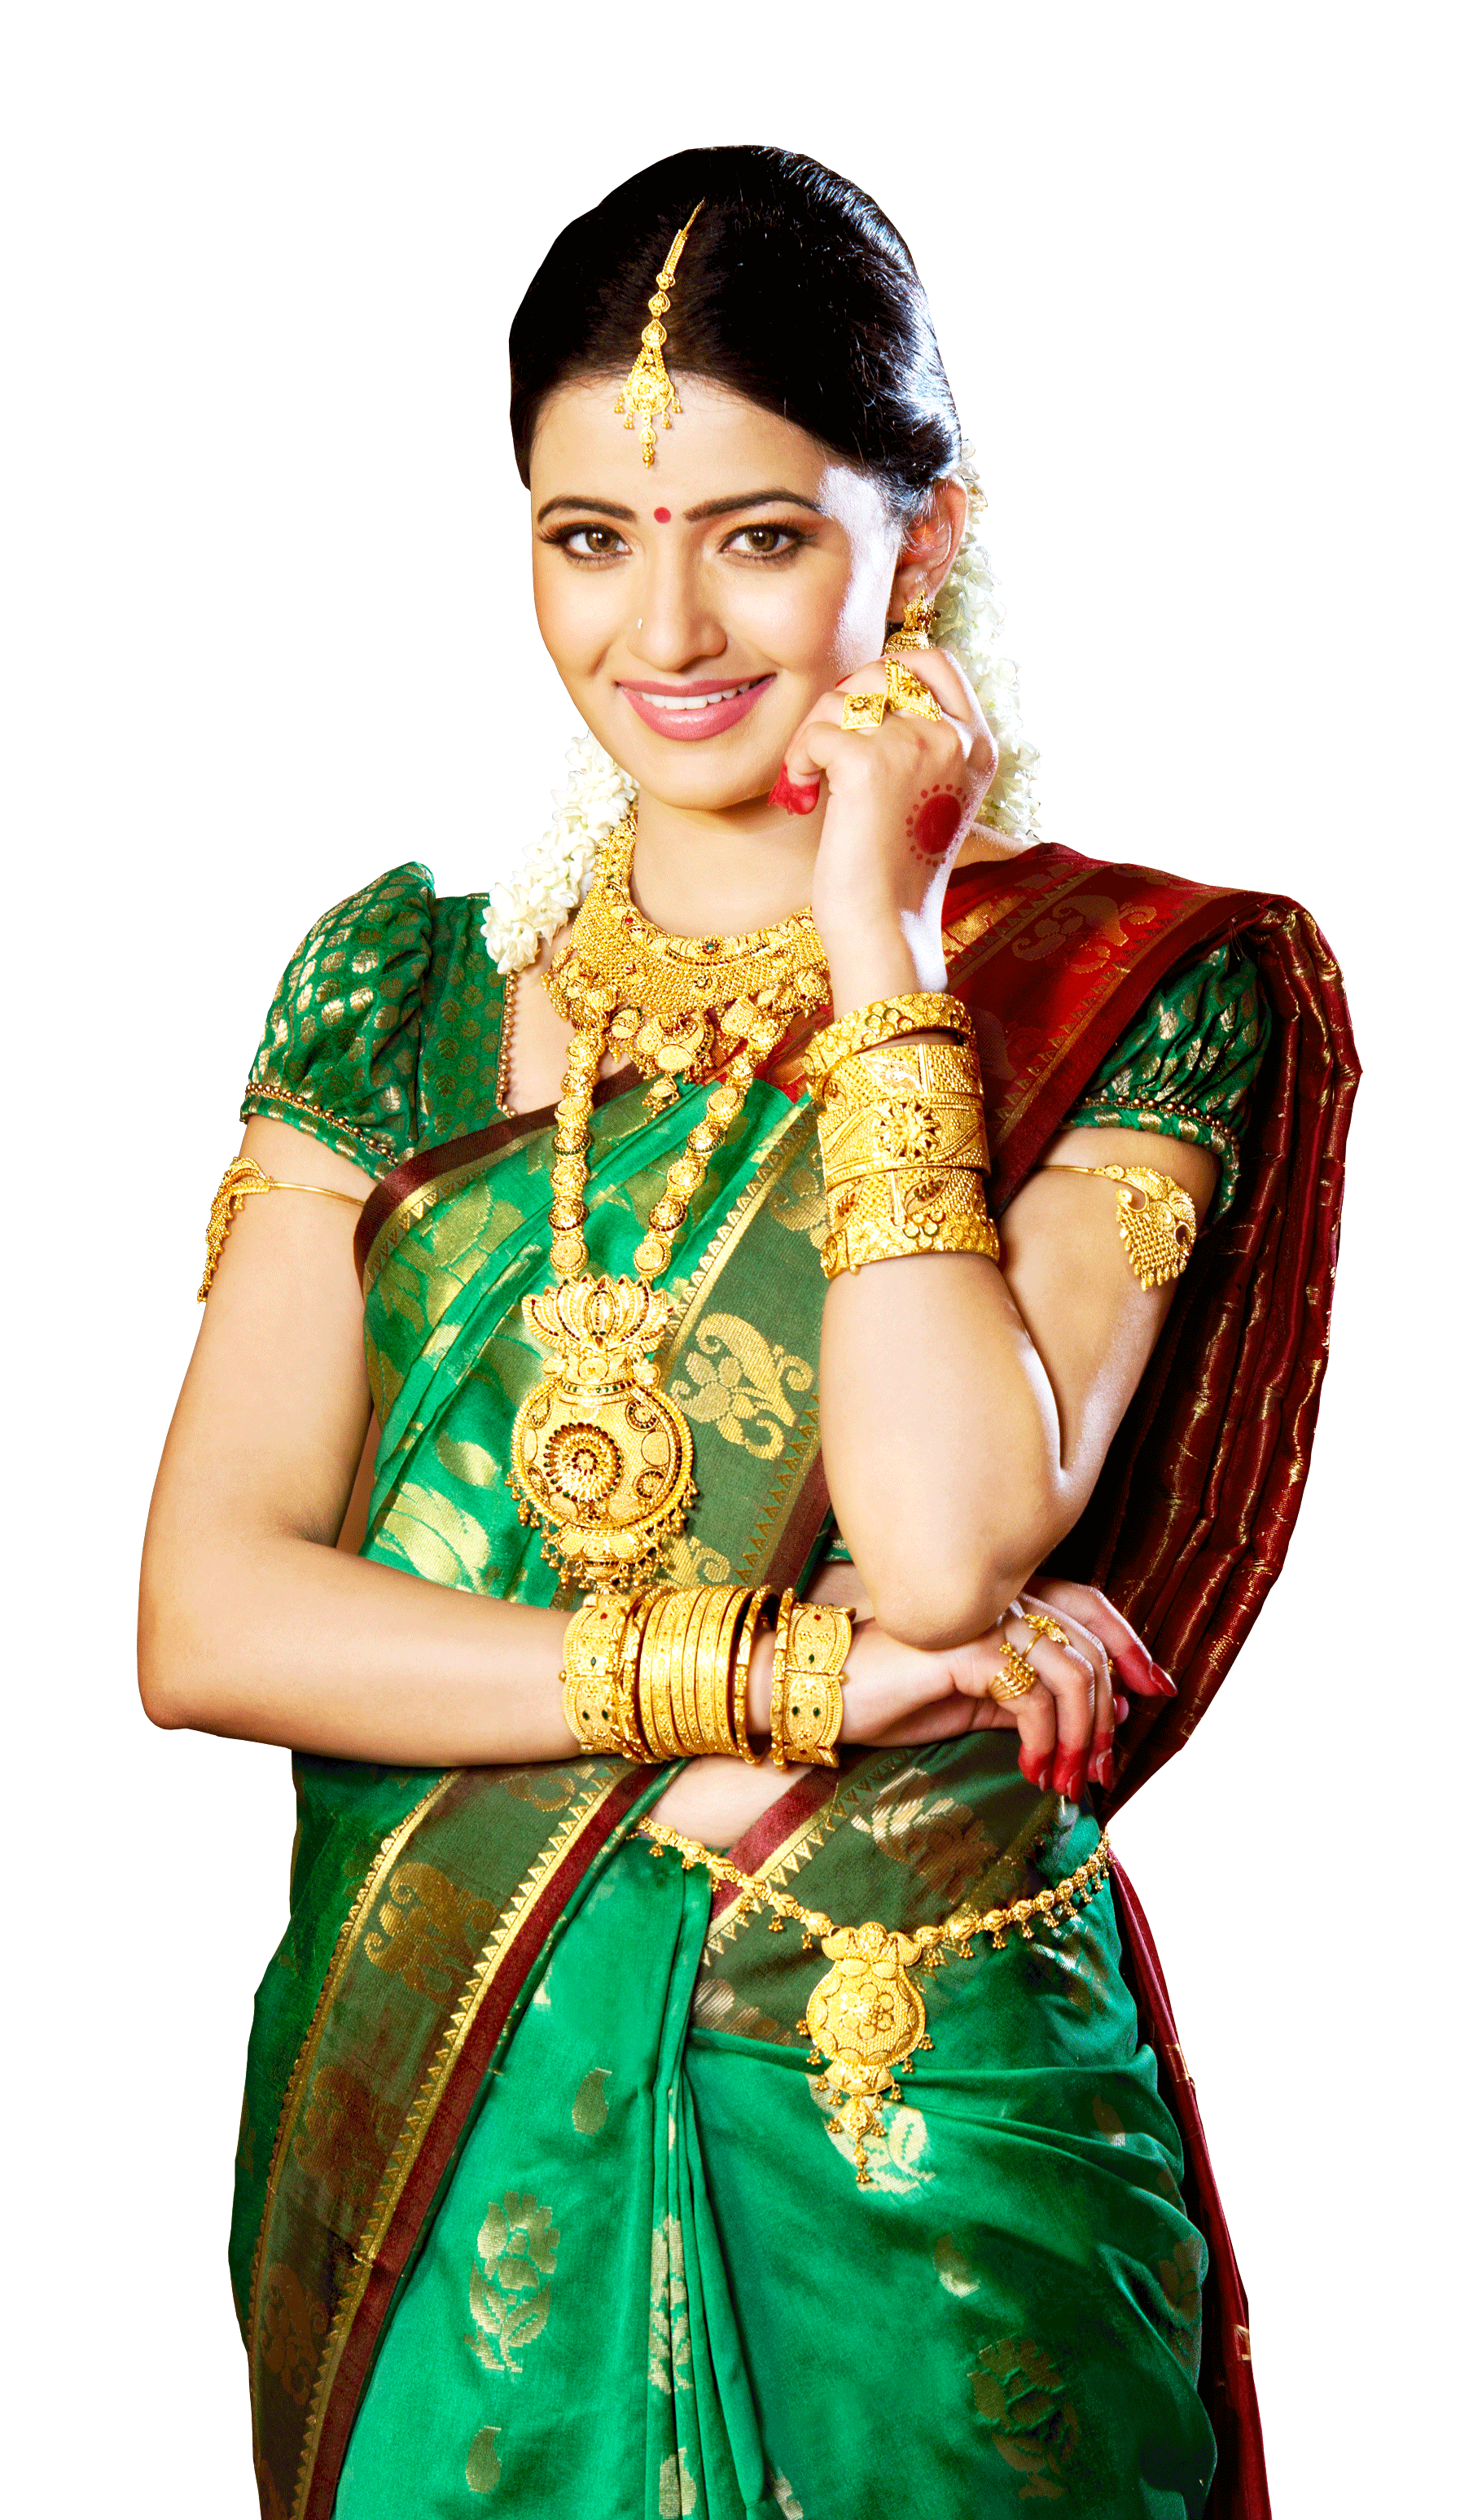 Jewellery Model Image PNG Image